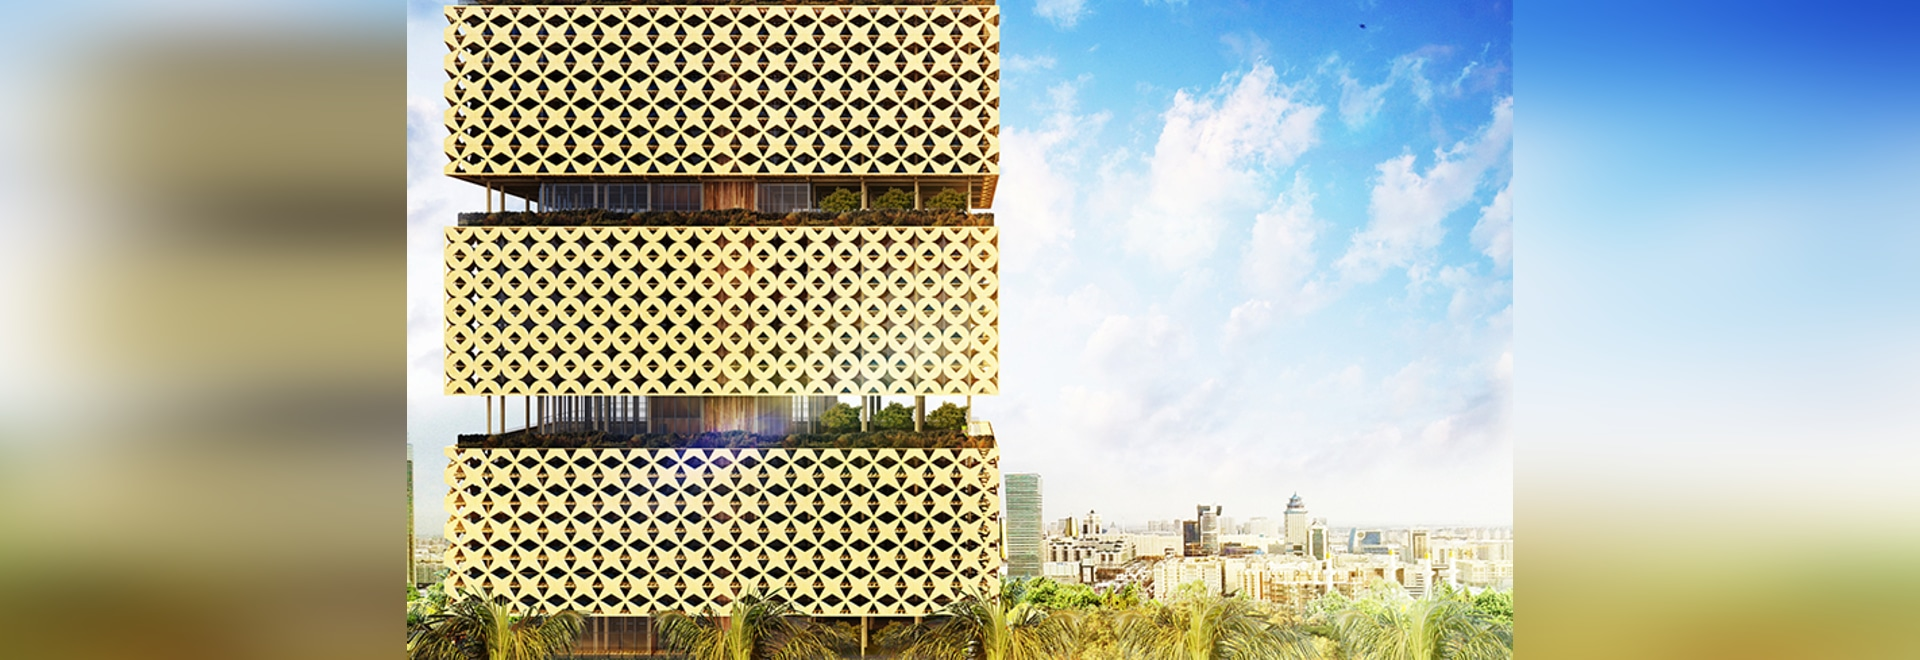 the city above the city: hermann kamte & associates' smart wooden tower in lagos, nigeria